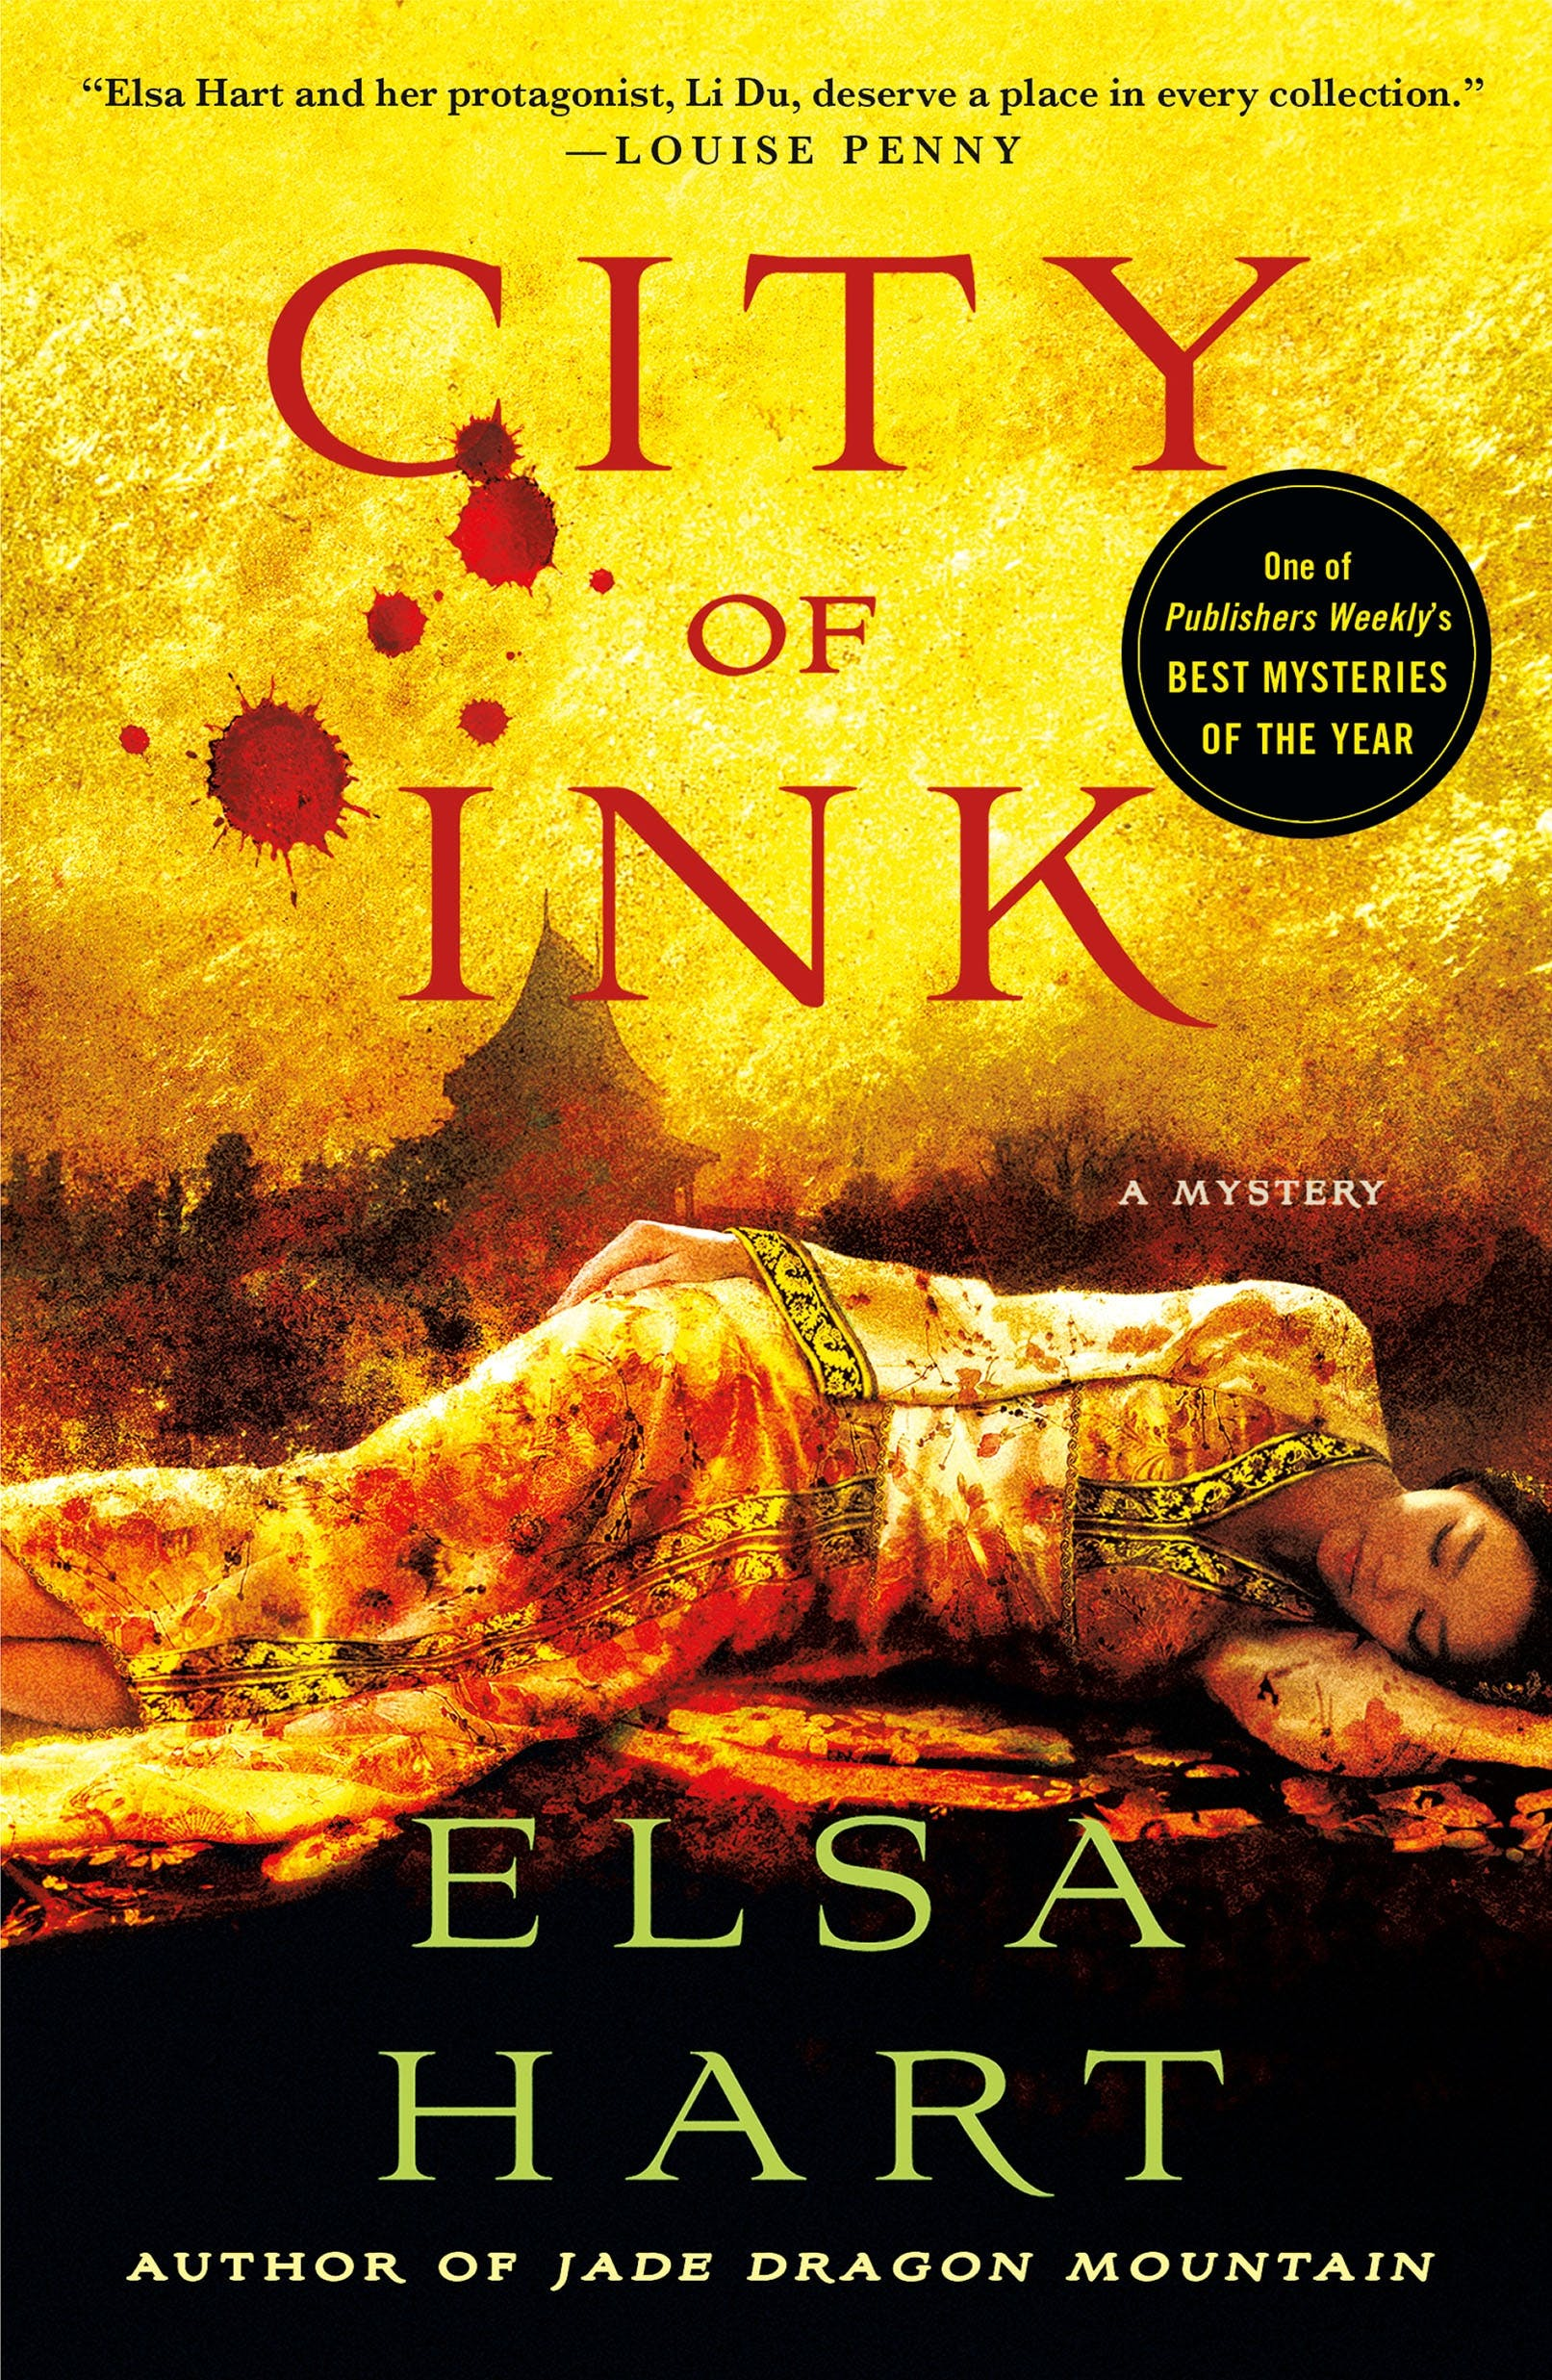 Image of City of Ink